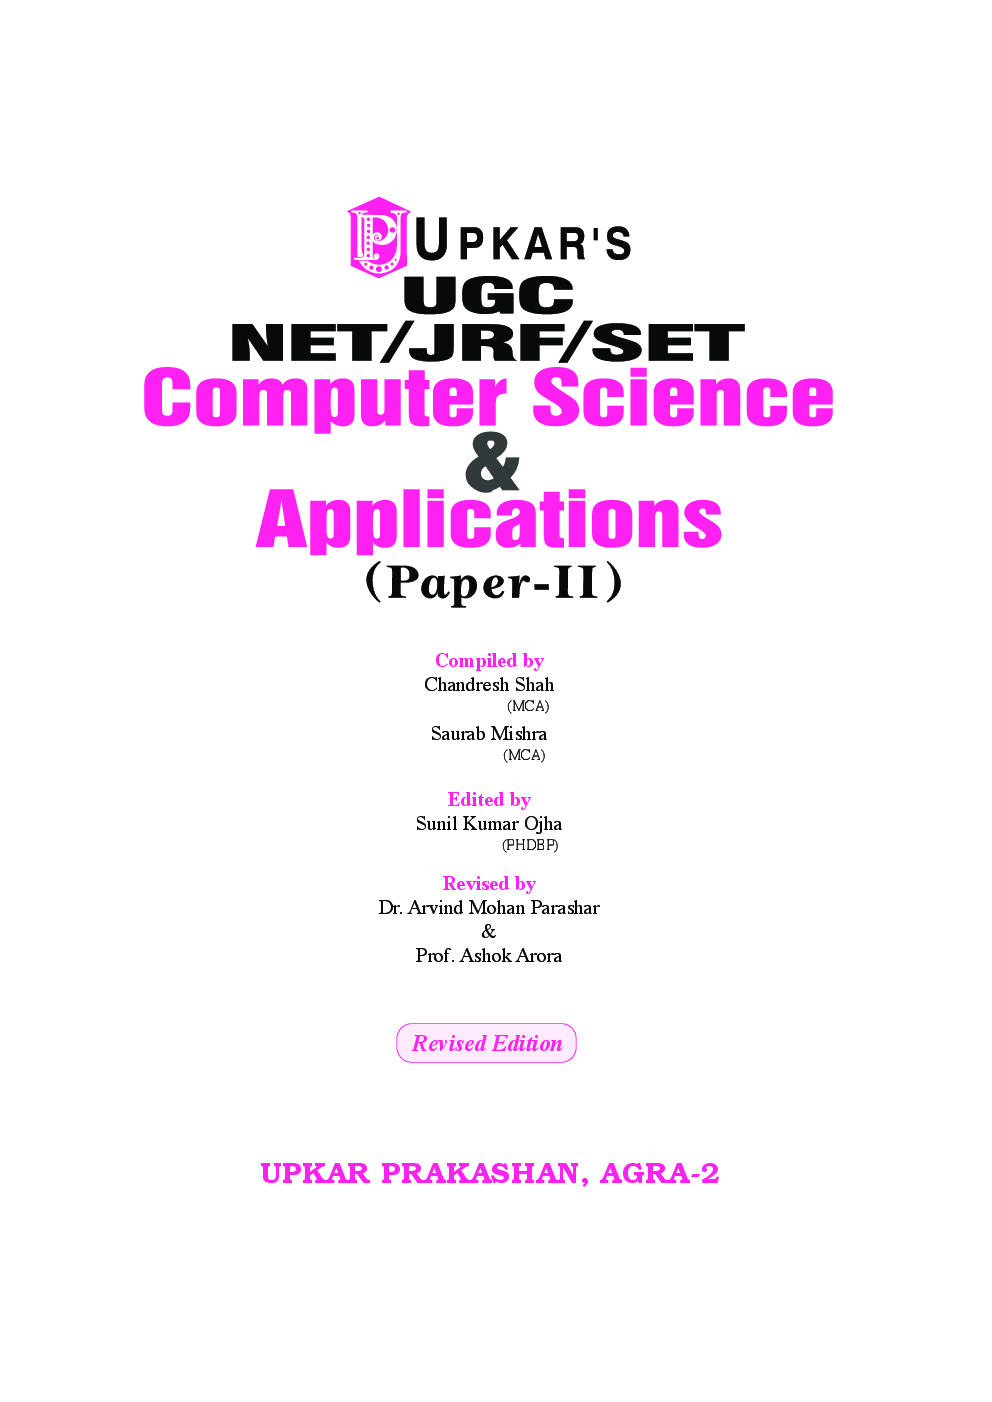 UGC NET /JRF /SET Computer Science And Applications (Paper II) - Page 2